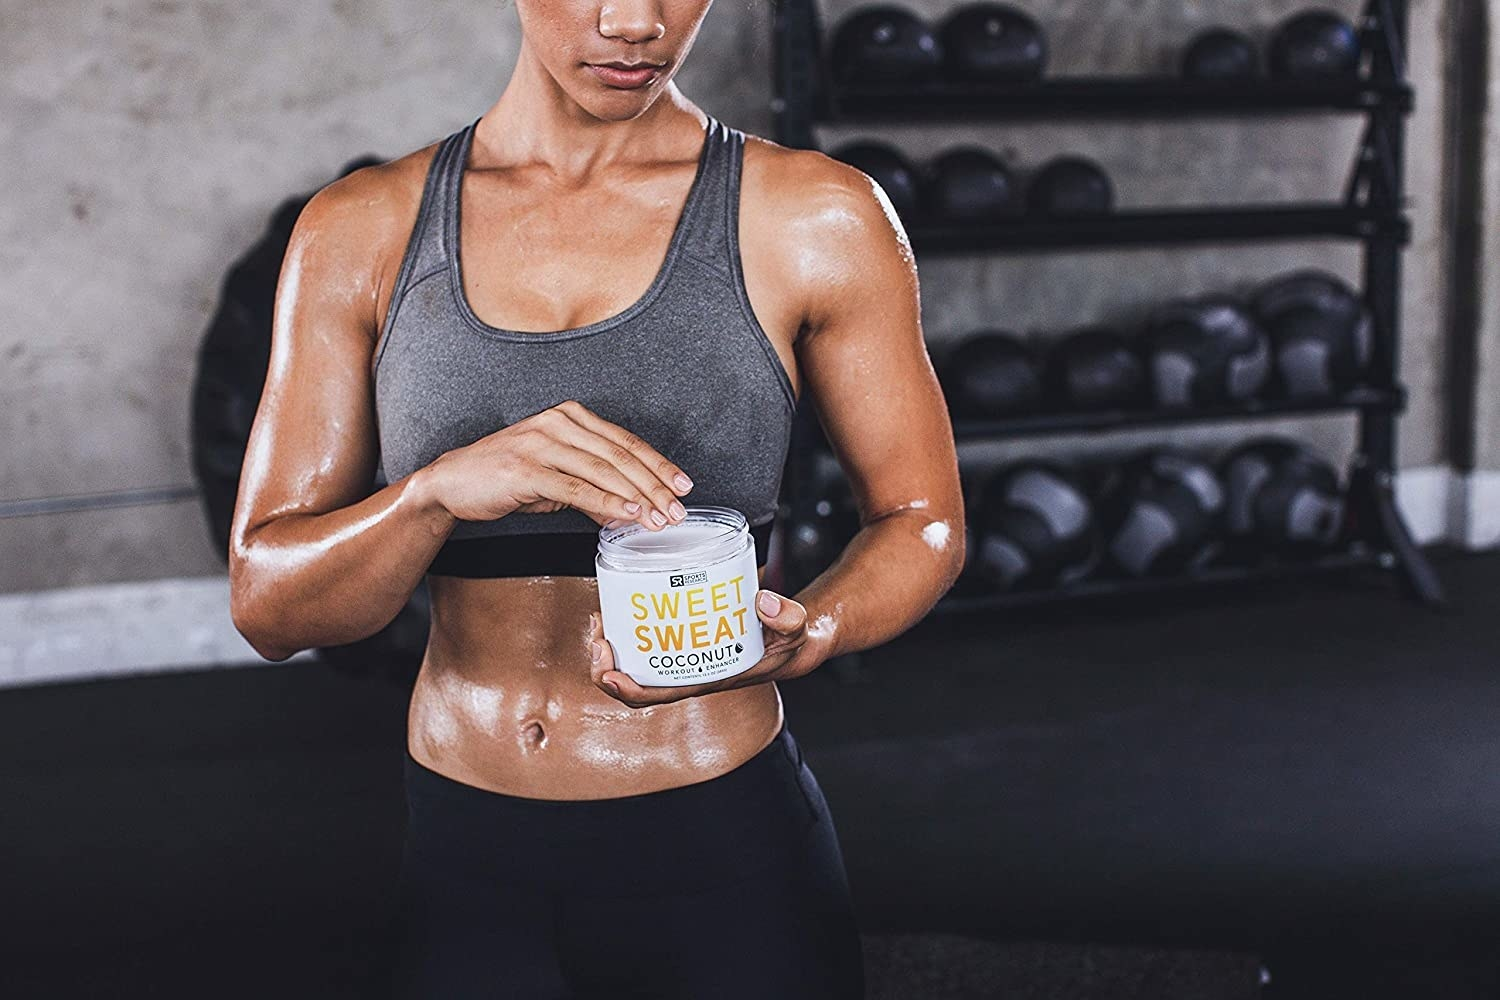 A glistening person applies the cream to their body before a workout